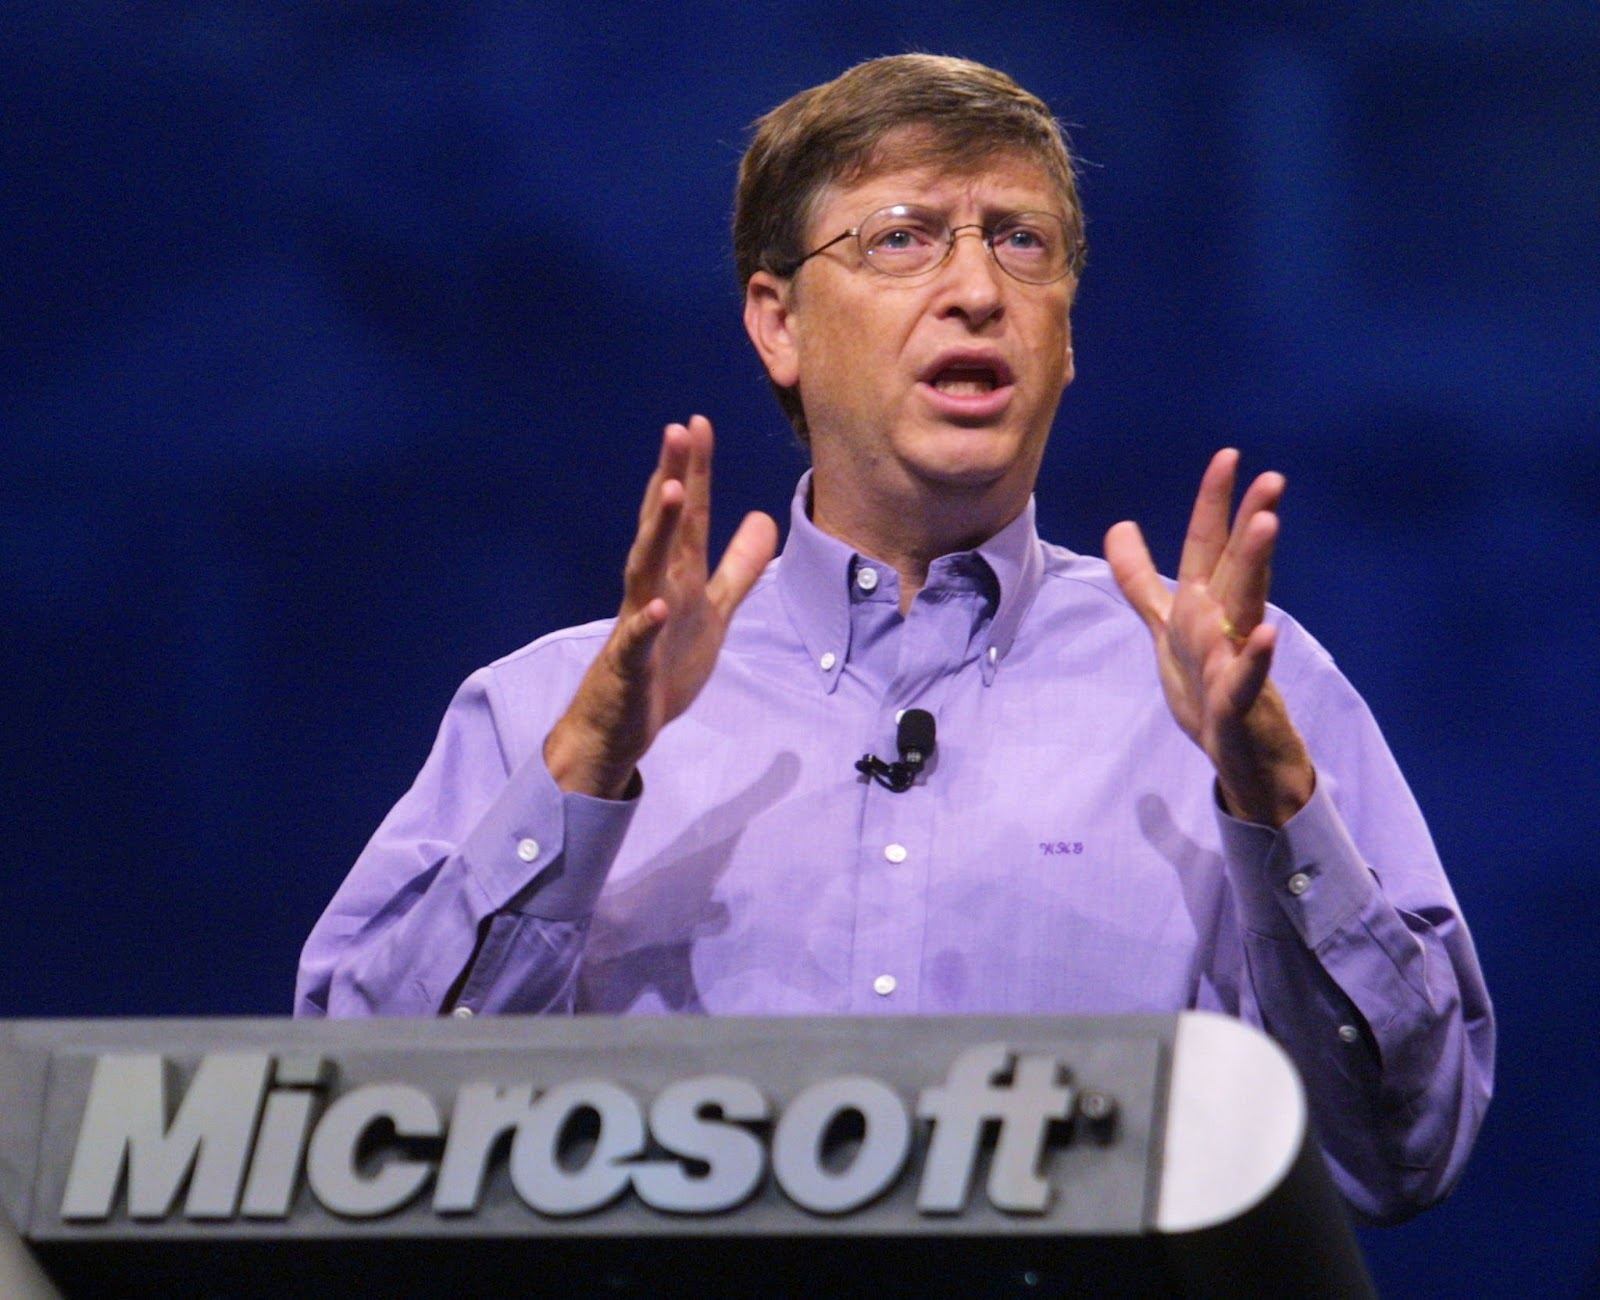 a biography of bill gates the co founder of microsoft With a net worth of approximately $89 billion, microsoft co-founder bill gates is one of the wealthiest men in the world.